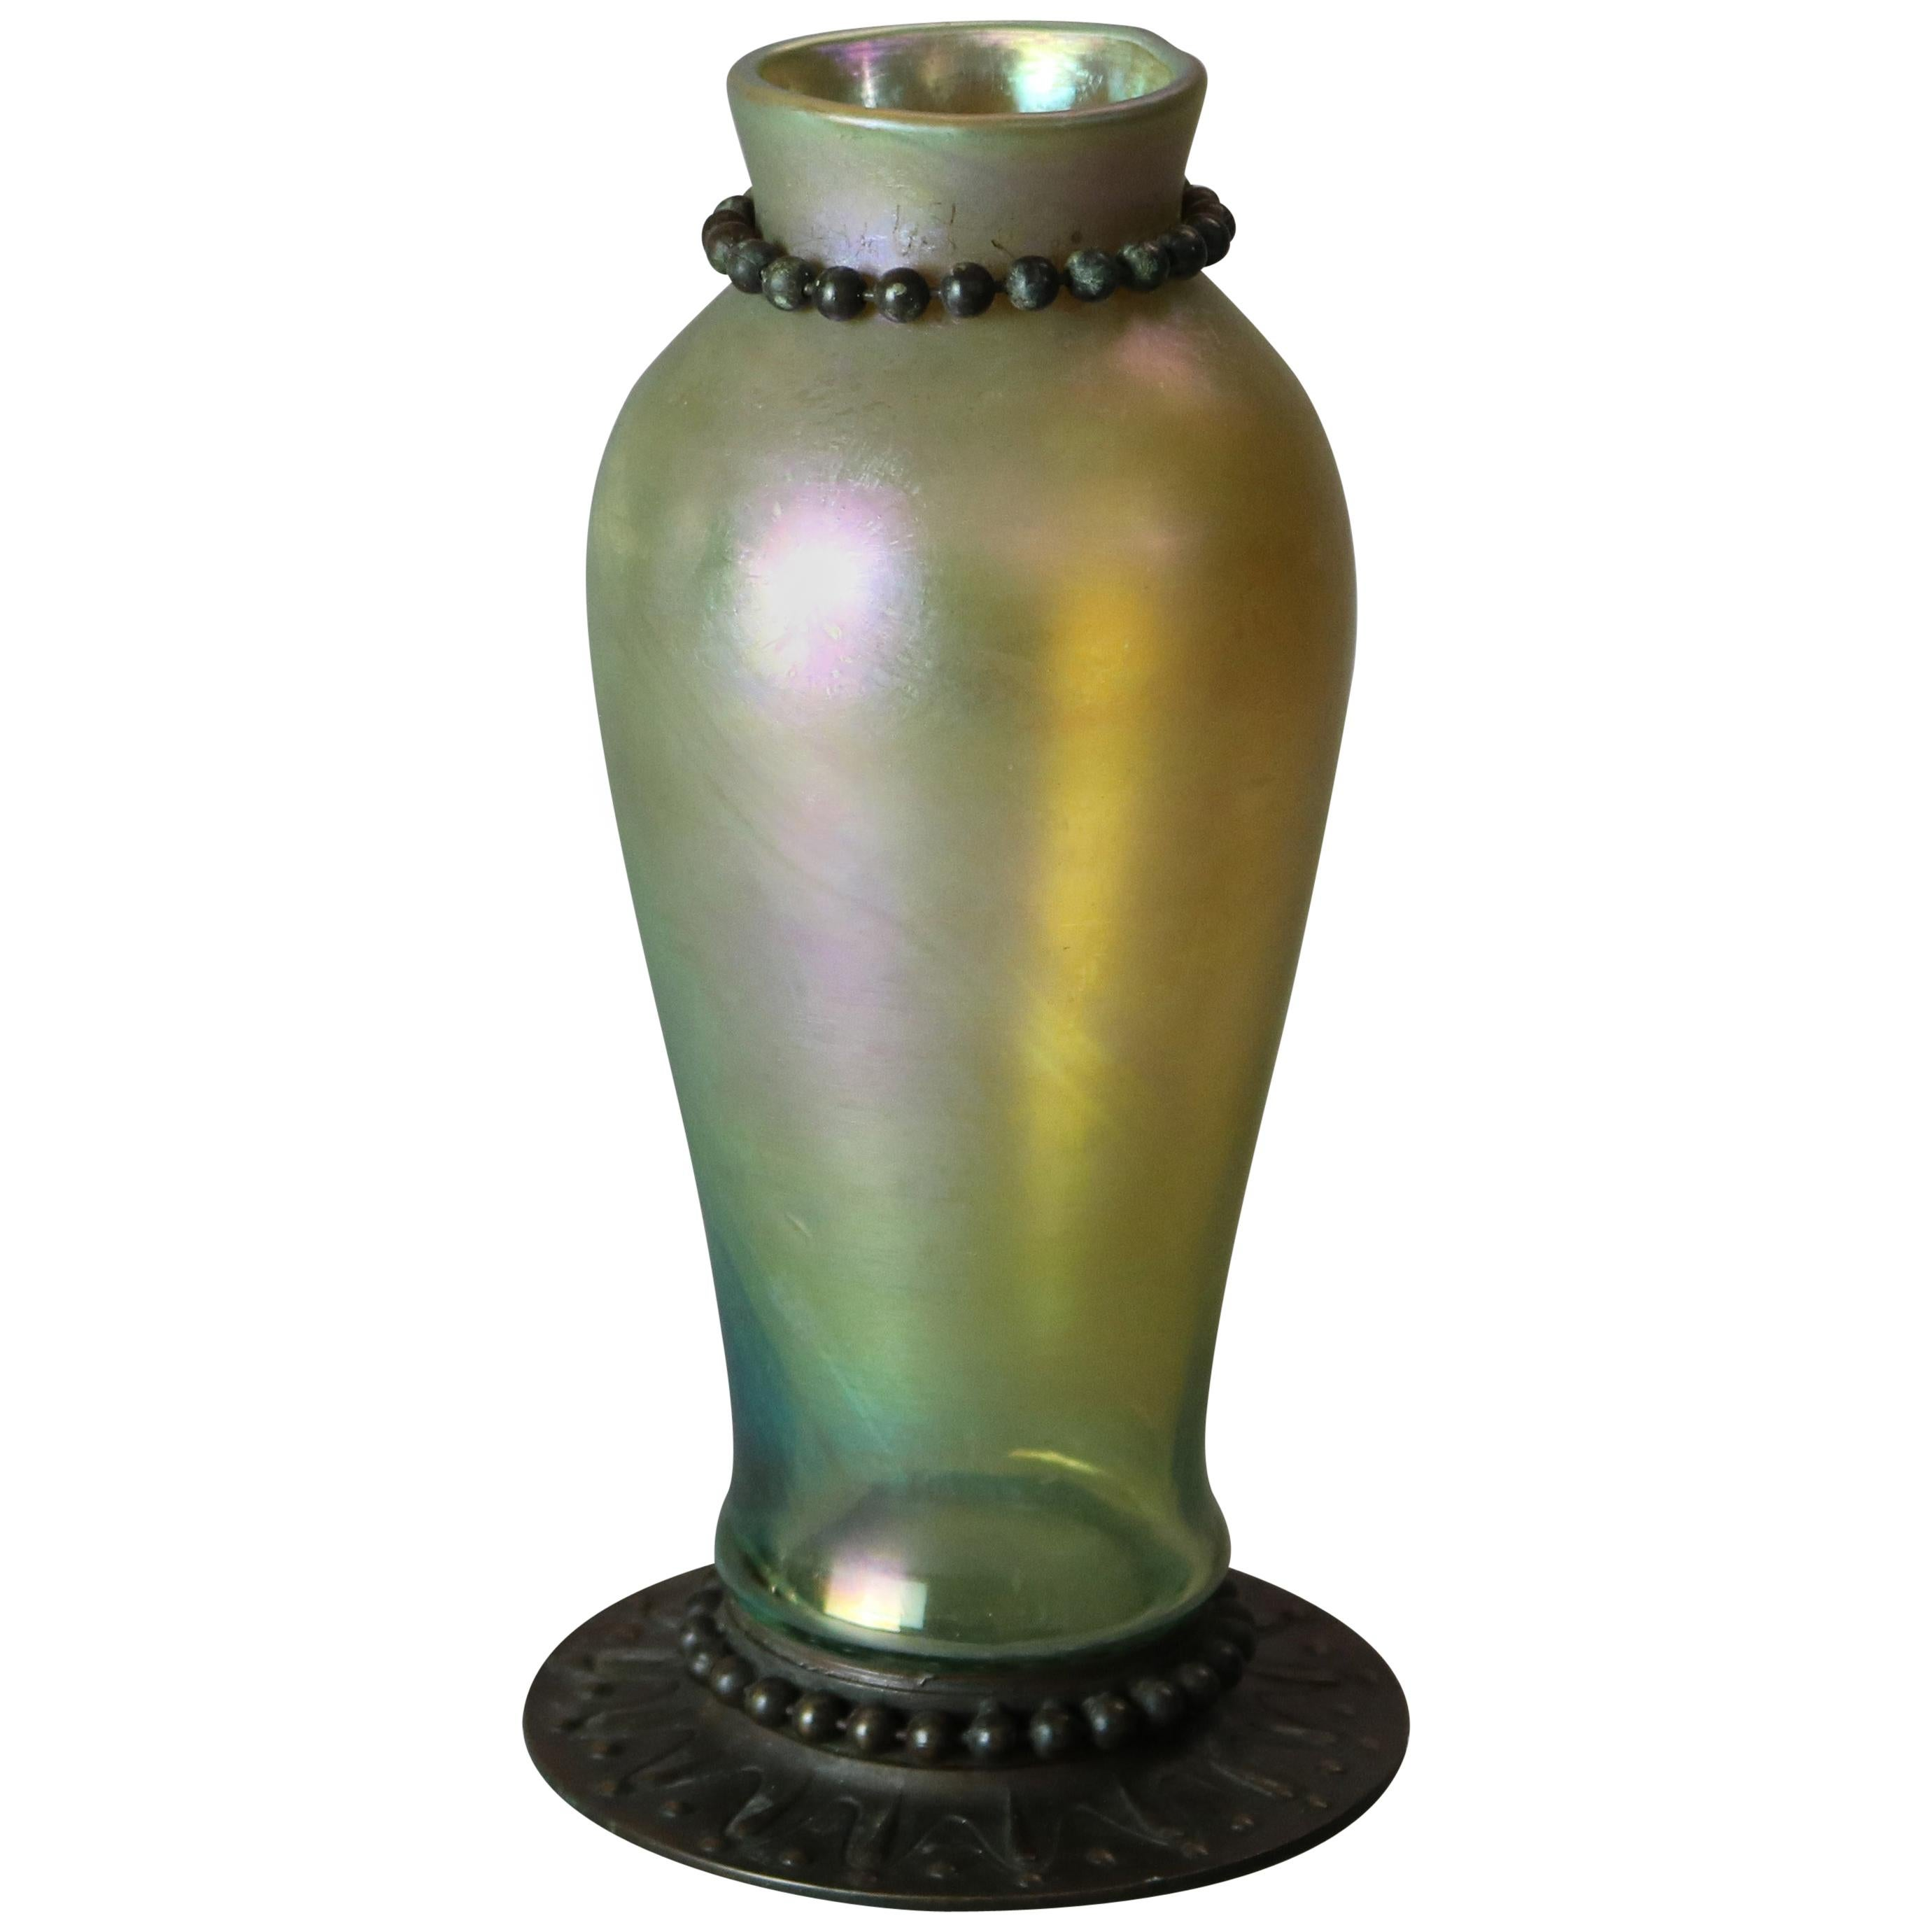 Antique Arts & Crafts Tiffany Favrile Art Glass & Bronze Vase, Signed circa 1910